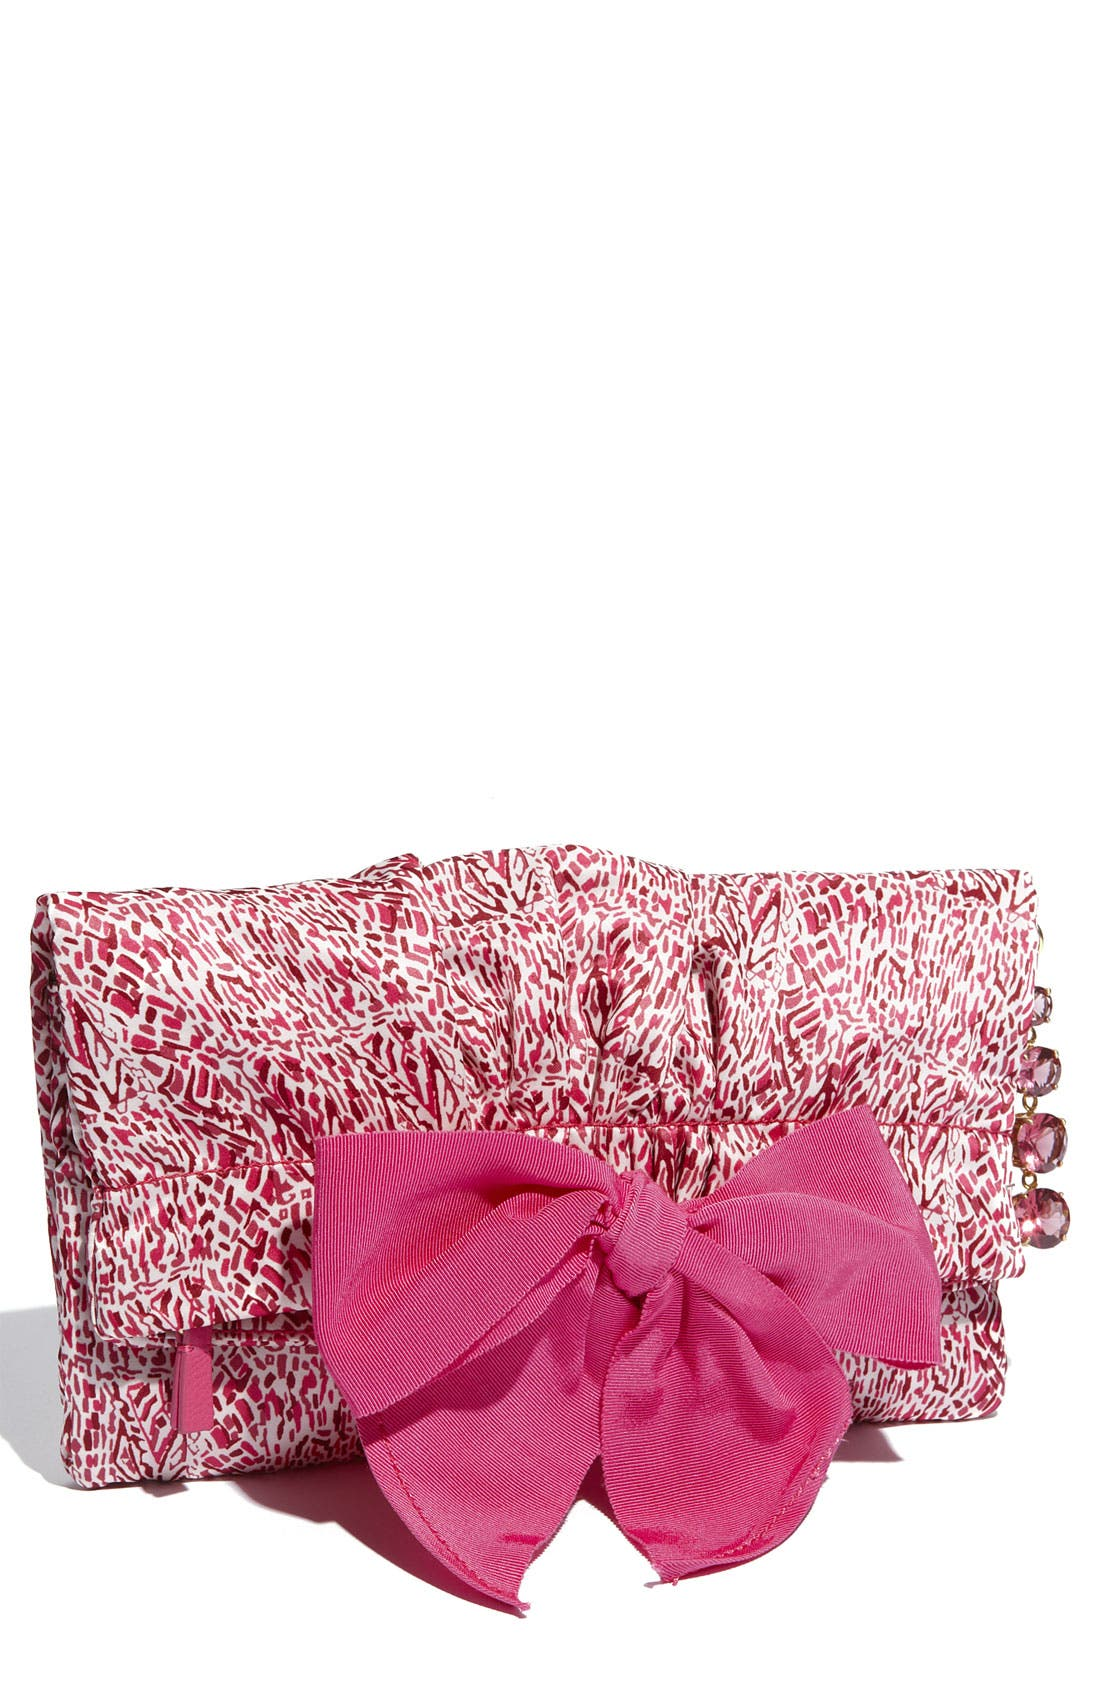 Main Image - Juicy Couture 'Madame Daydreamer' Clutch